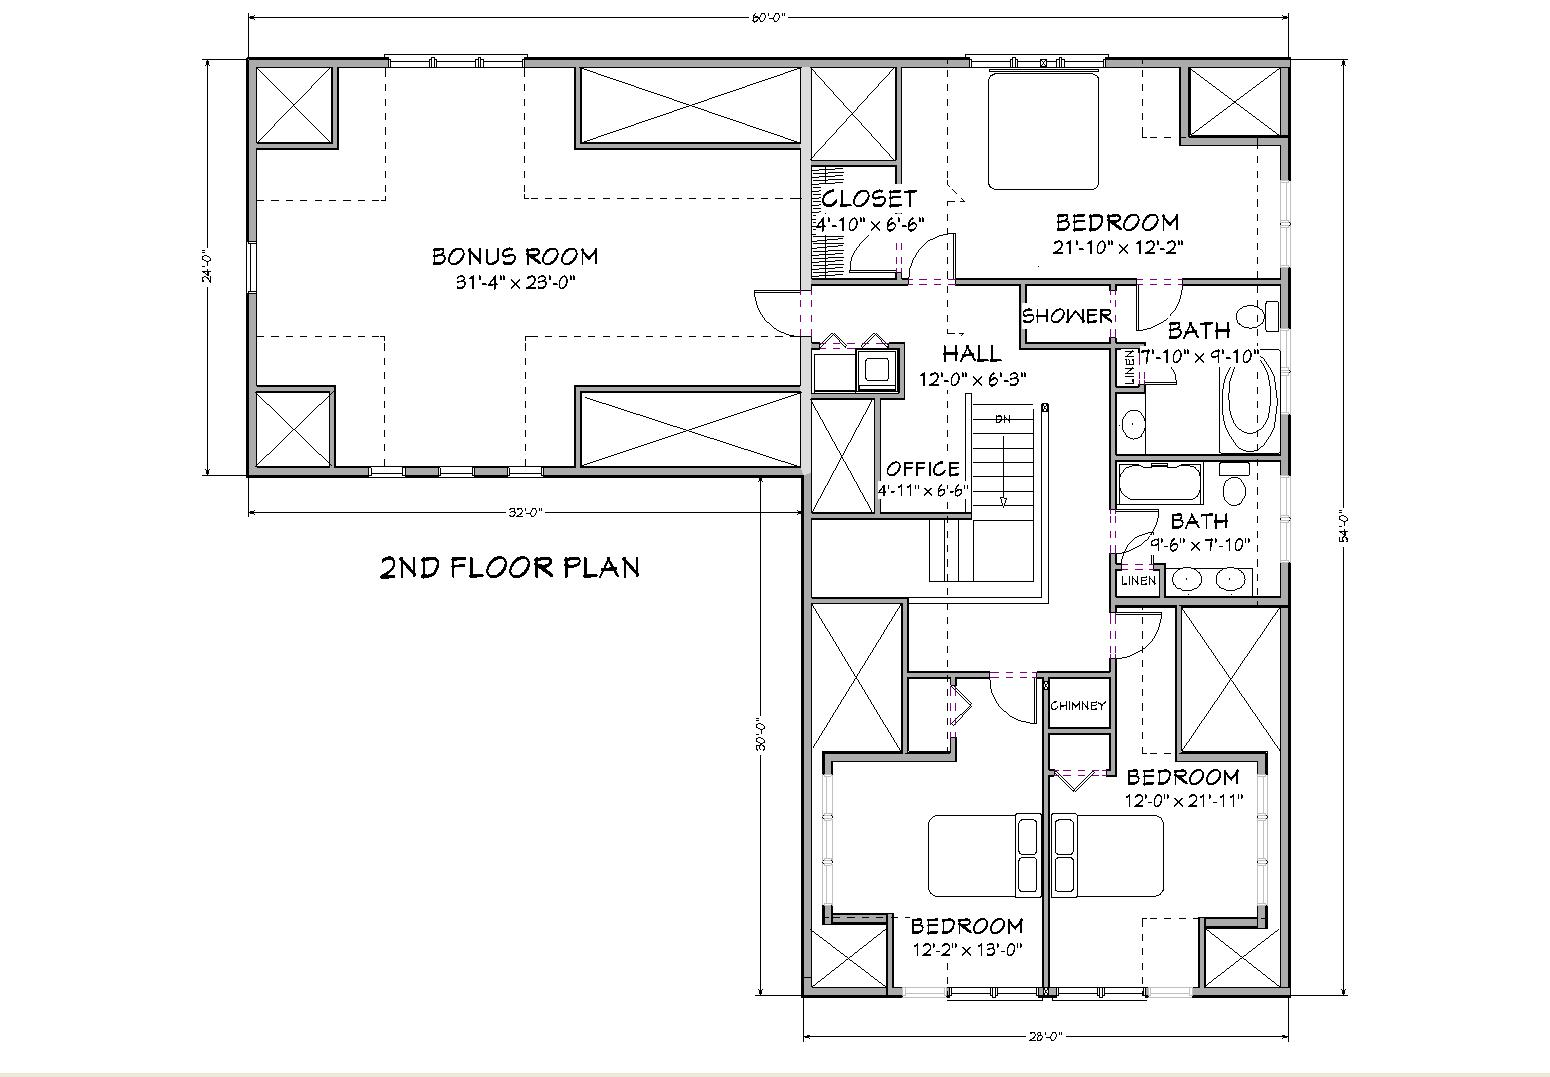 3000 square foot home plans floor plans for 3000 square foot house plans 2 story